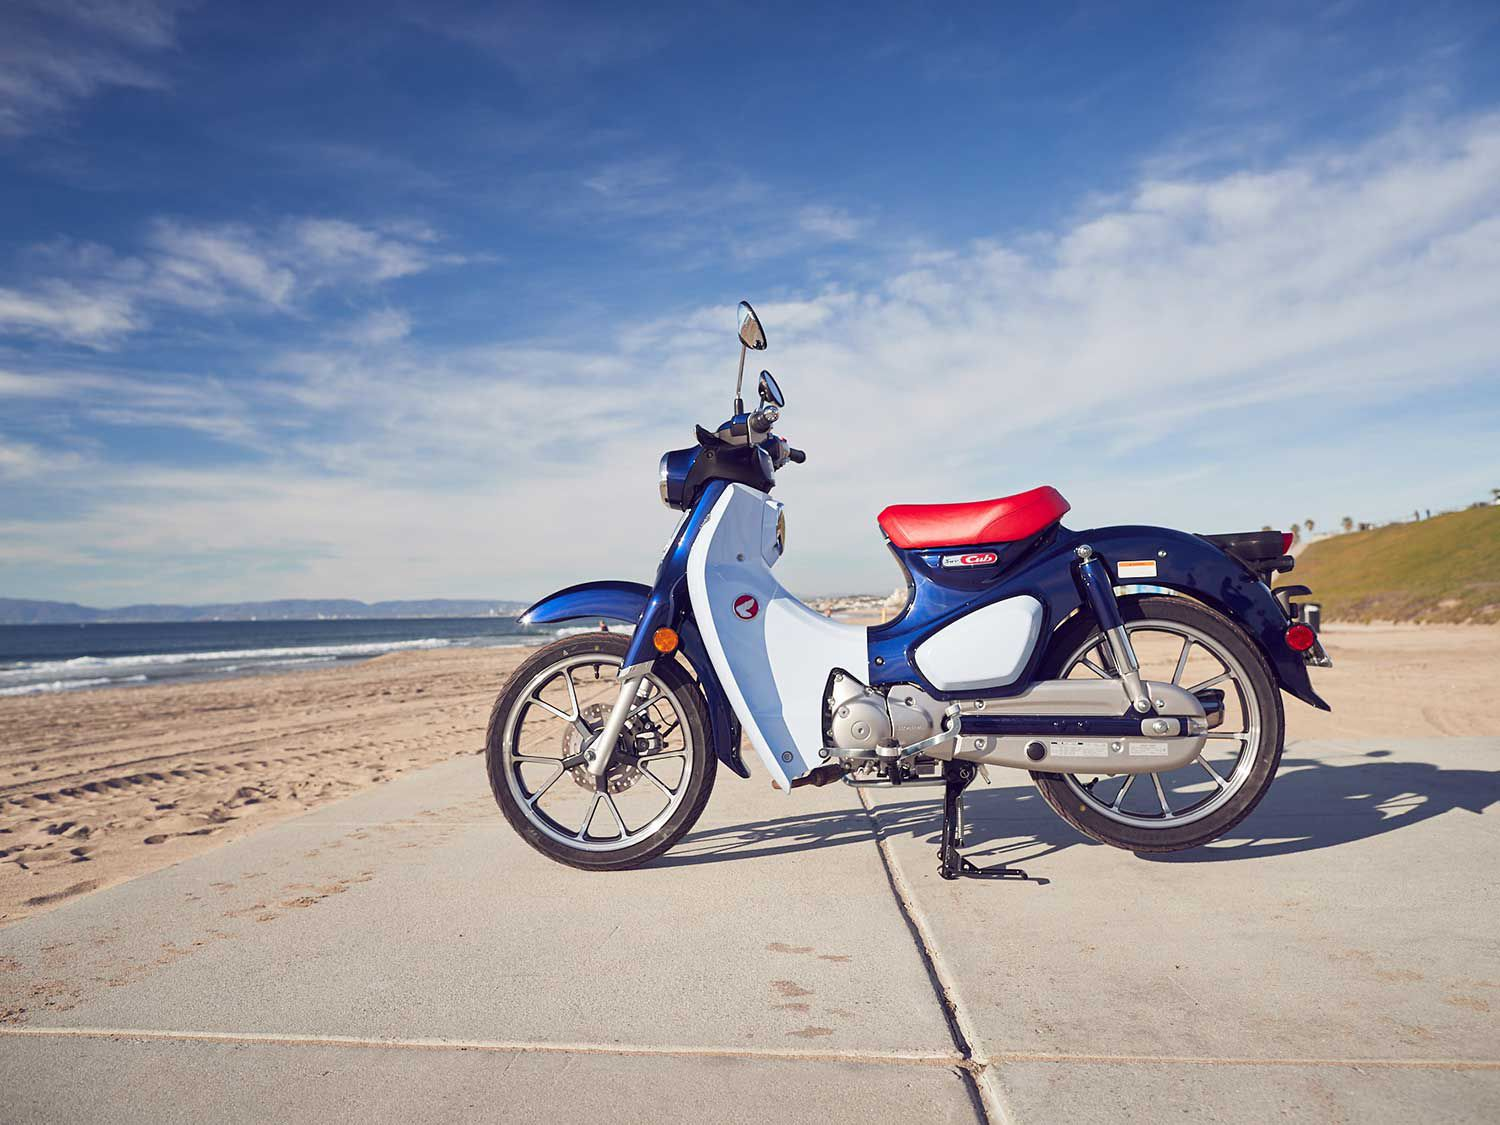 Riding The World's Friendliest Motorcycle, The Honda Super